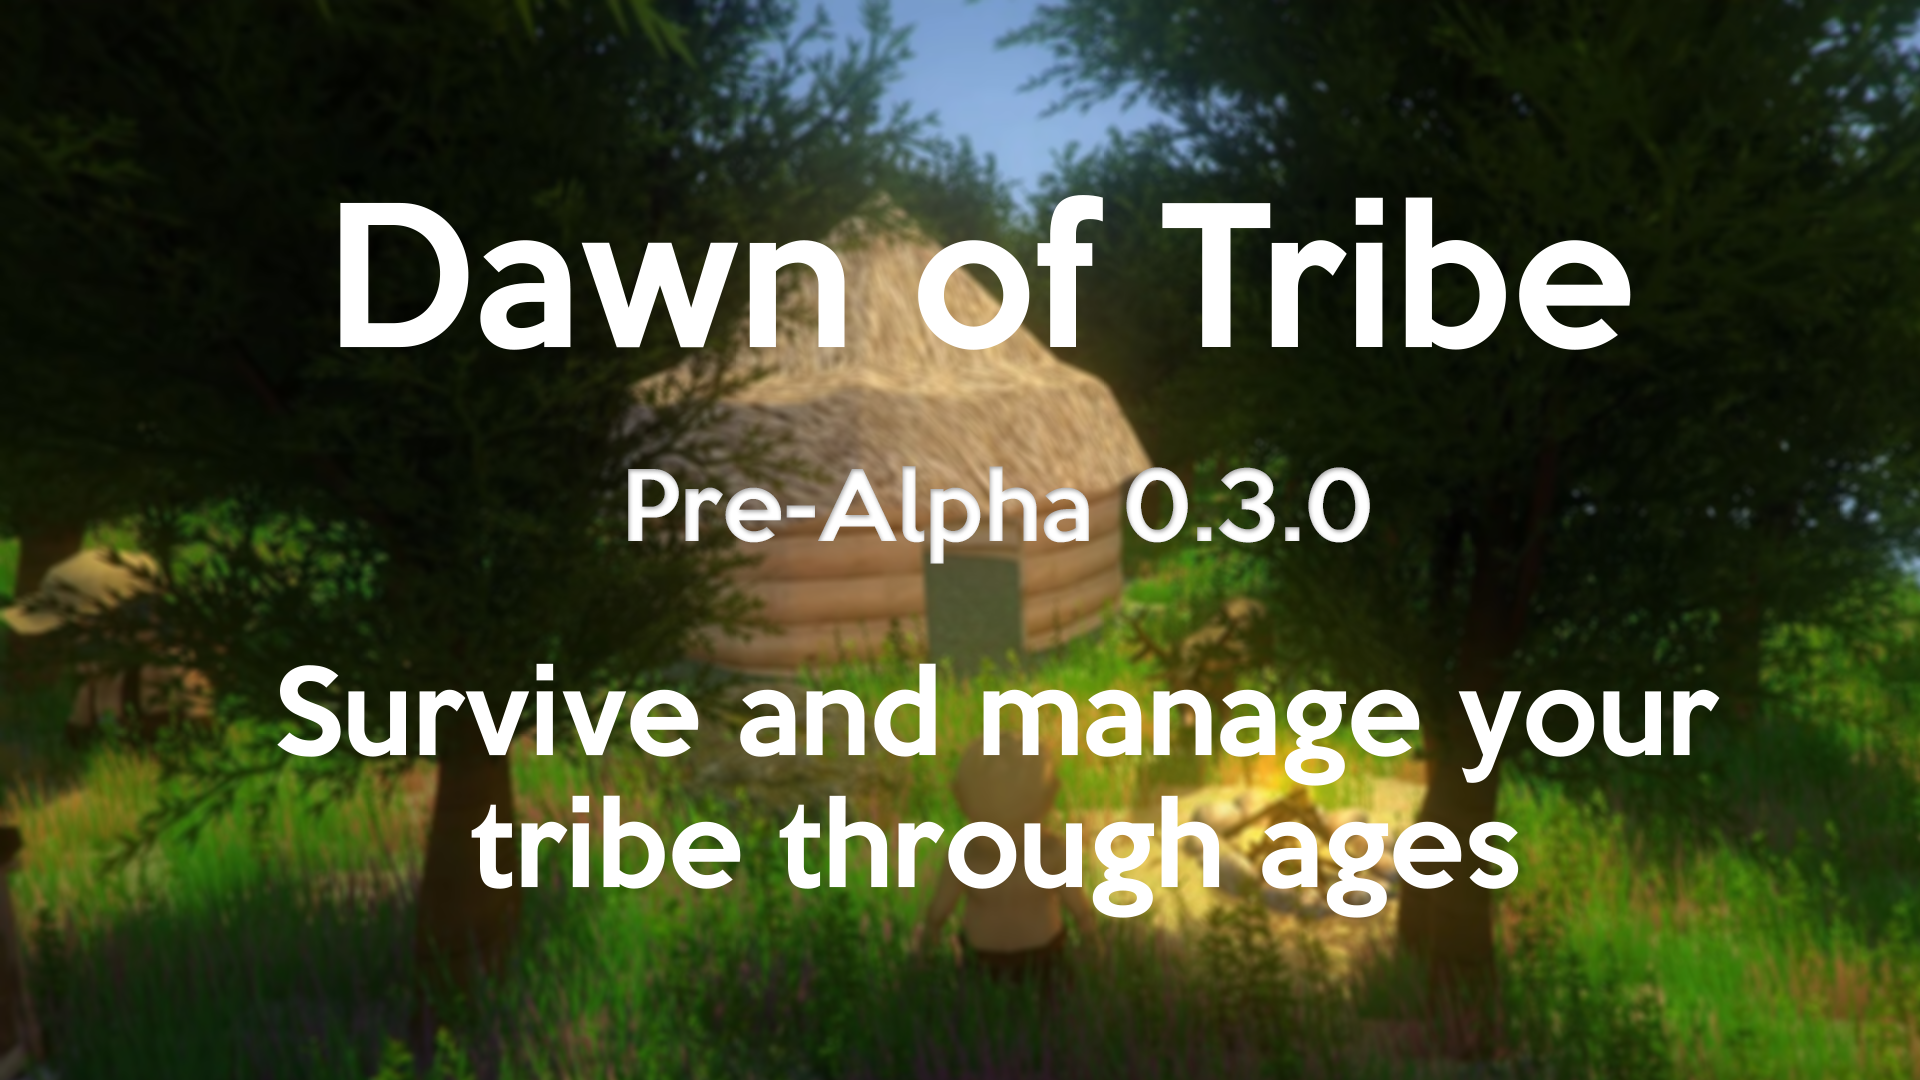 Dawn of Tribe